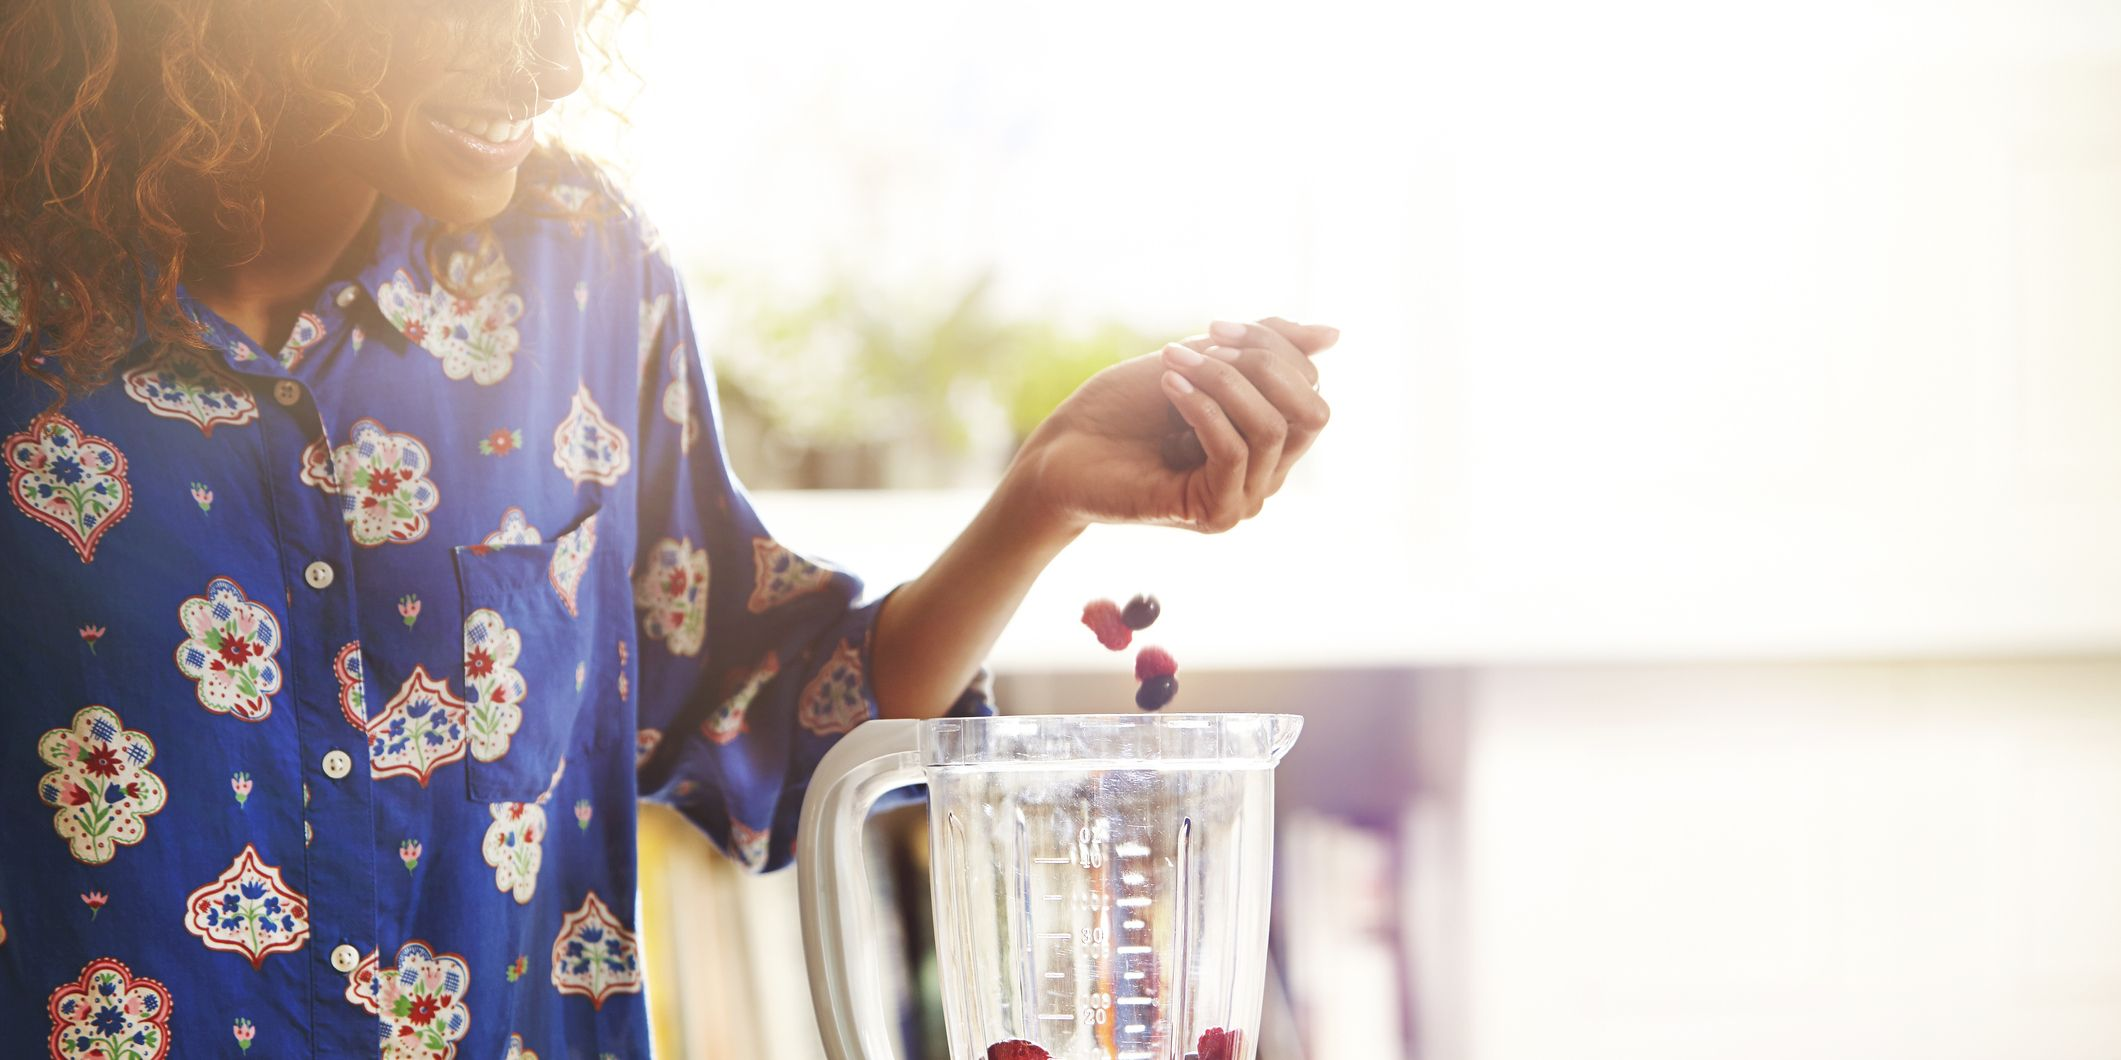 Woman making a smoothie at home.